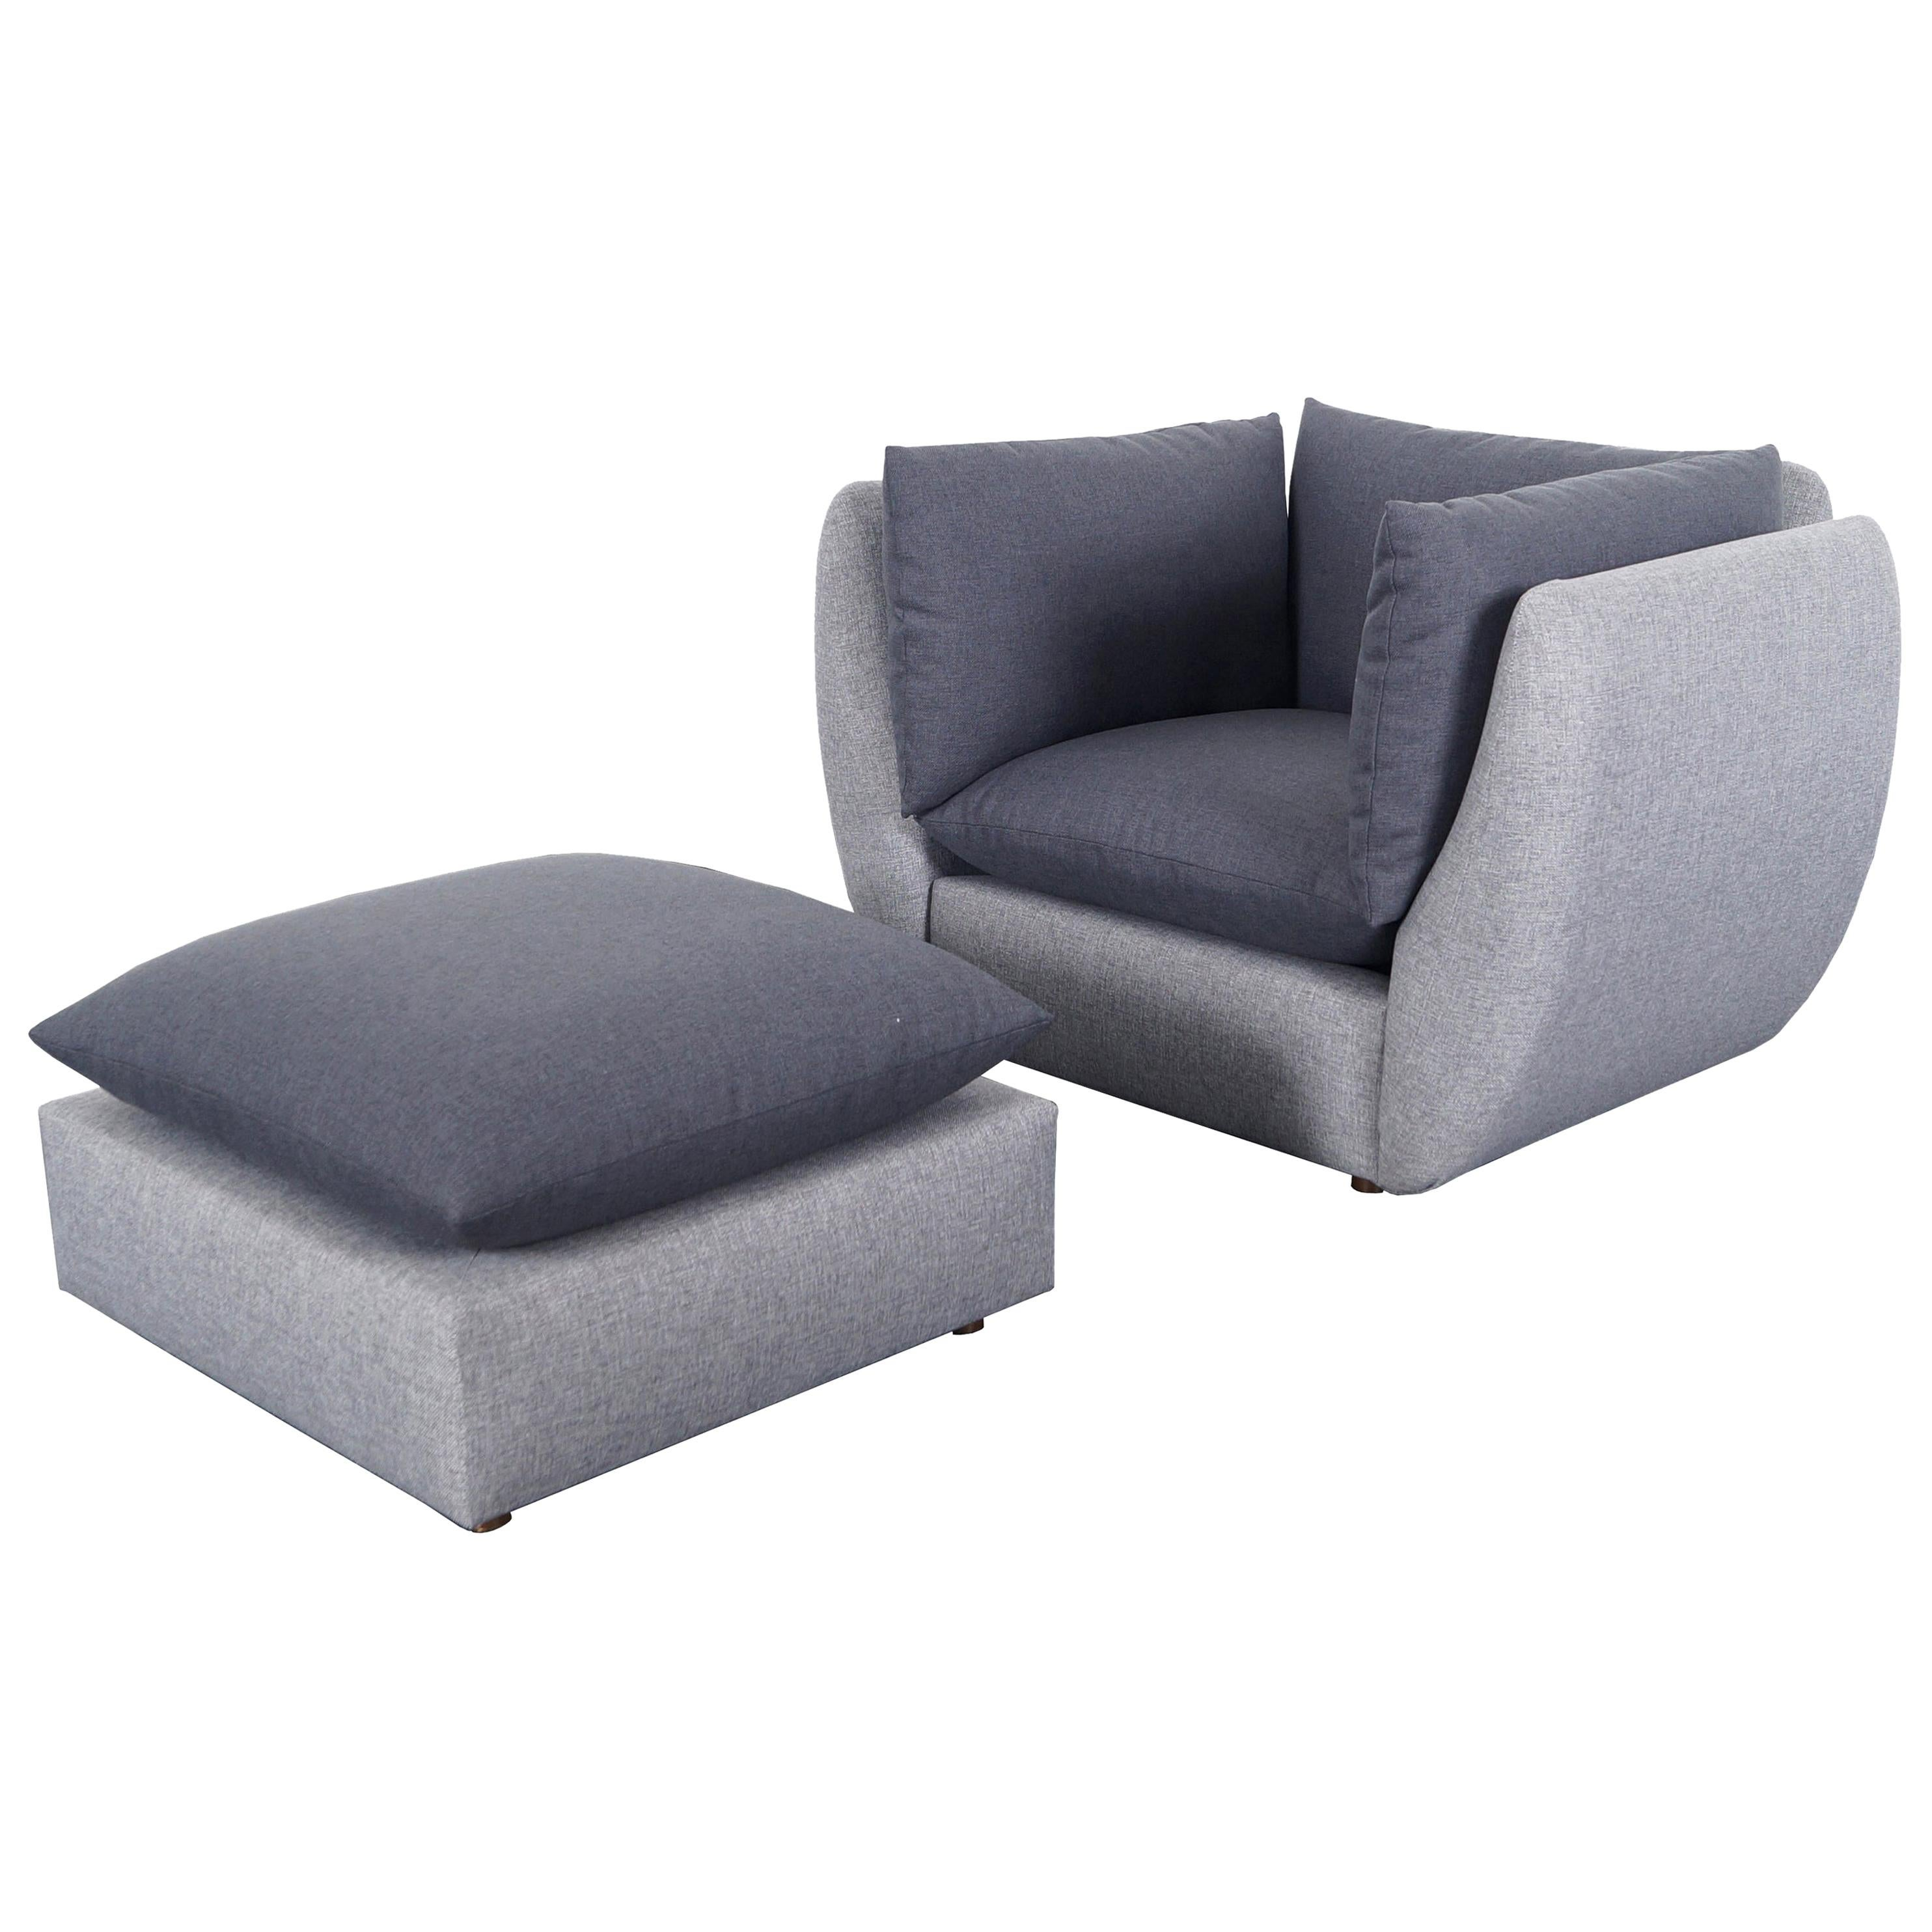 Mid-Century Modern Lounge Chair and Ottoman in the Manner of Milo Baughman